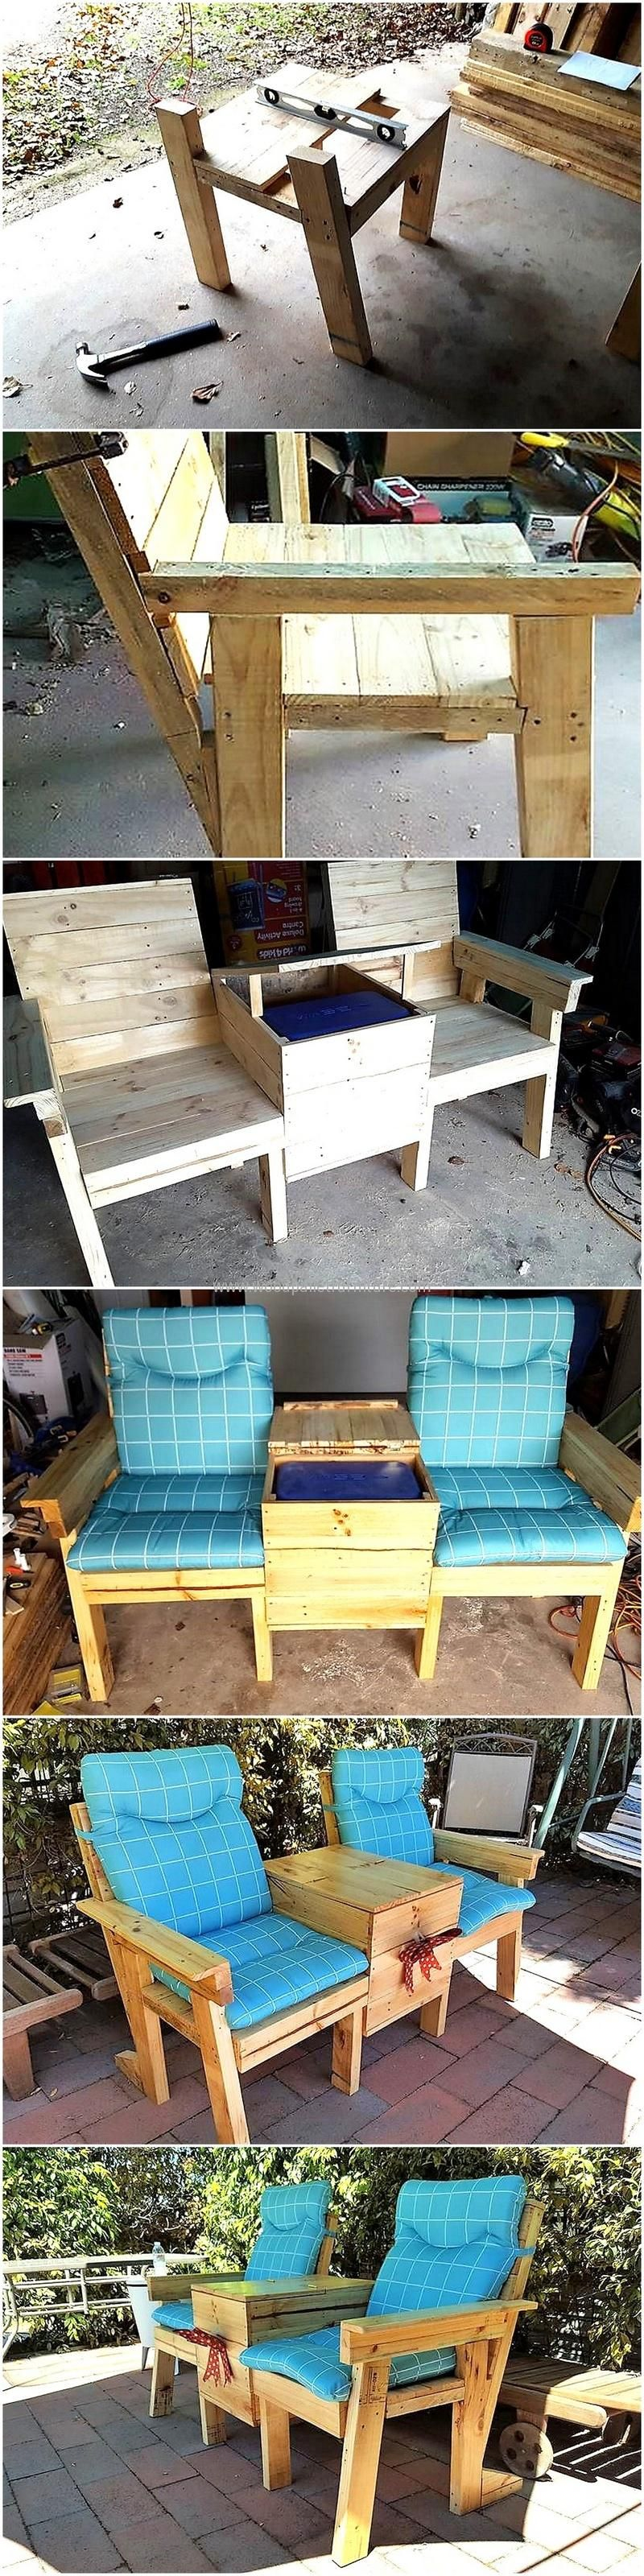 diy patio double chair with storage | Madera | Pinterest | Palets y ...